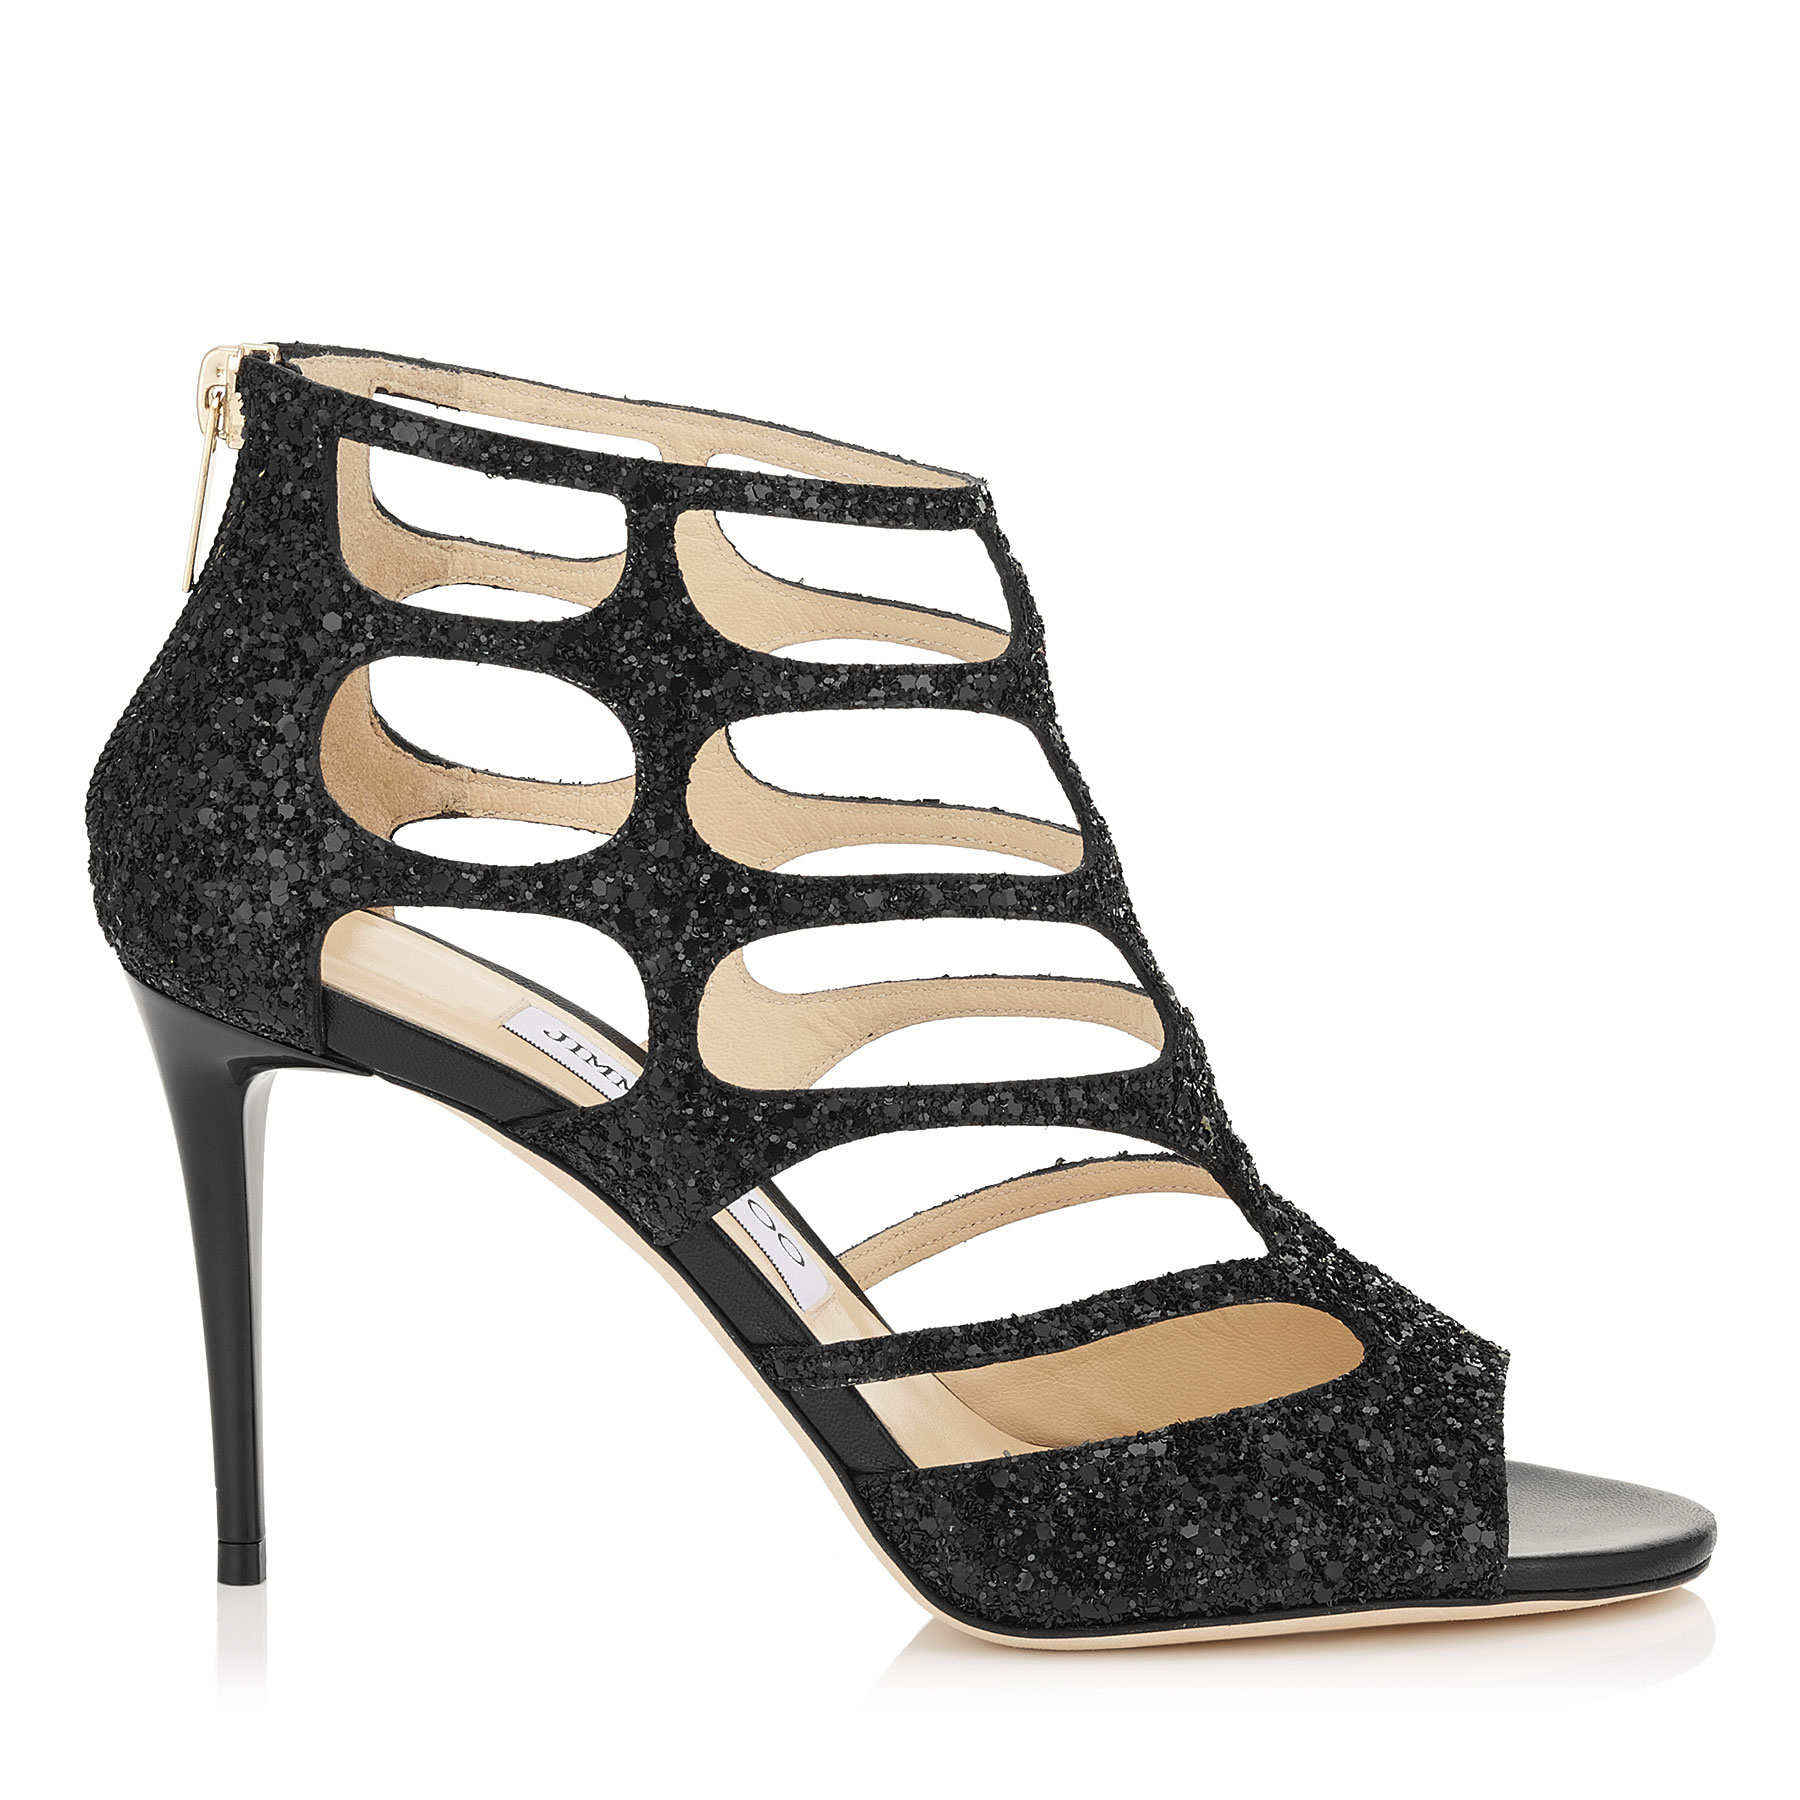 REN 85 Black Coarse Glitter Fabric Sandals by Jimmy Choo